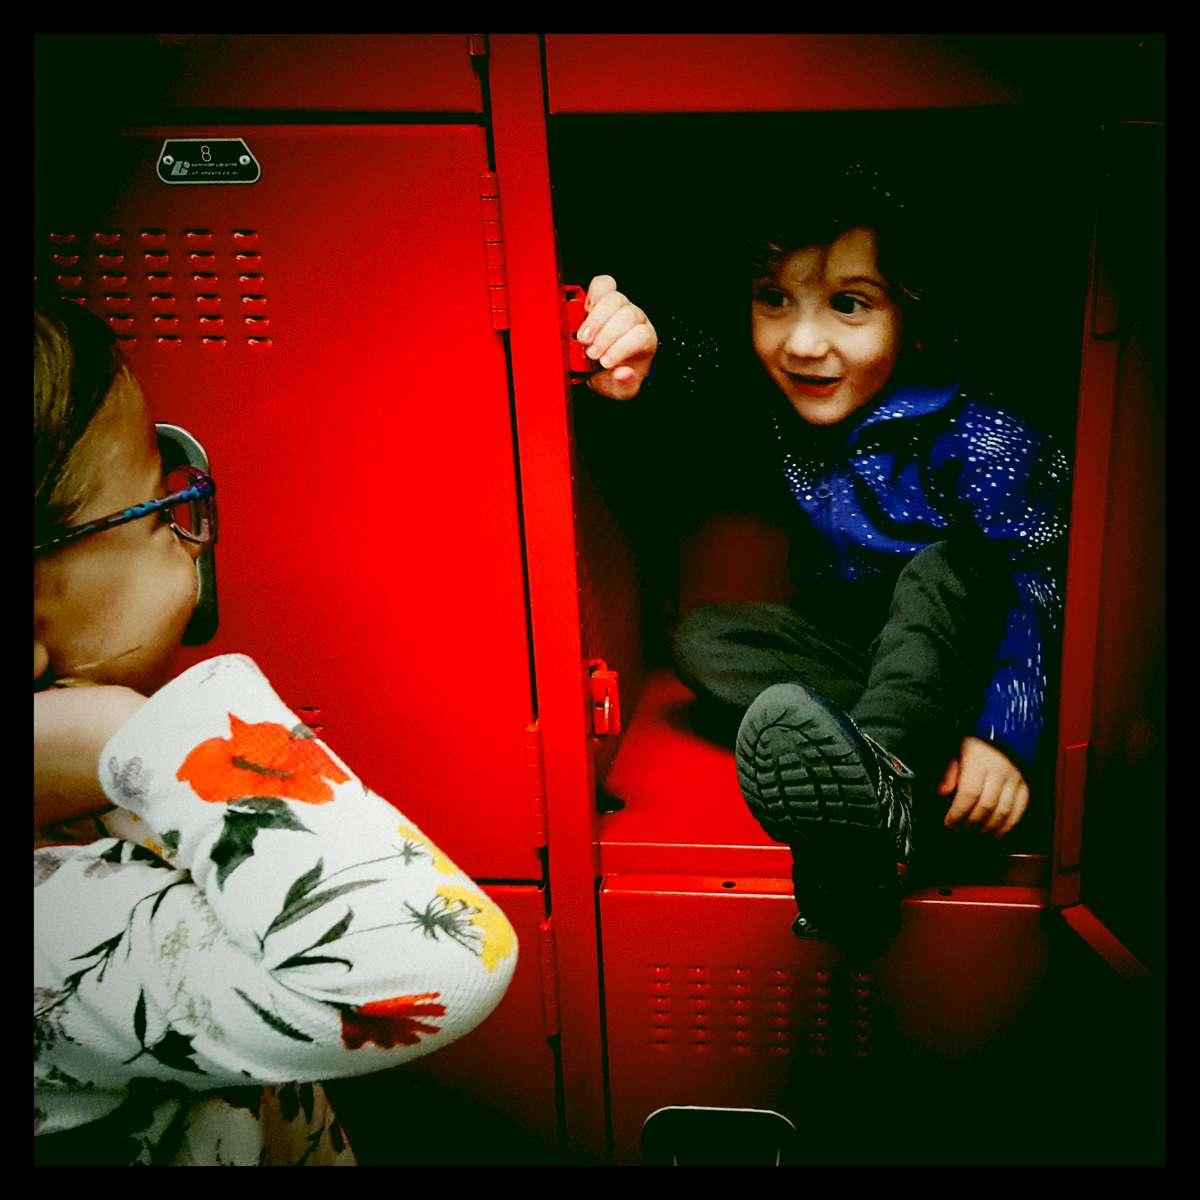 After ice skating lessons Luka decided to play hide-and-seek in the lockers. But he didn't tell anyone he was playing so we just heard him laughing. We opened up the door and he popped out. October 2017.